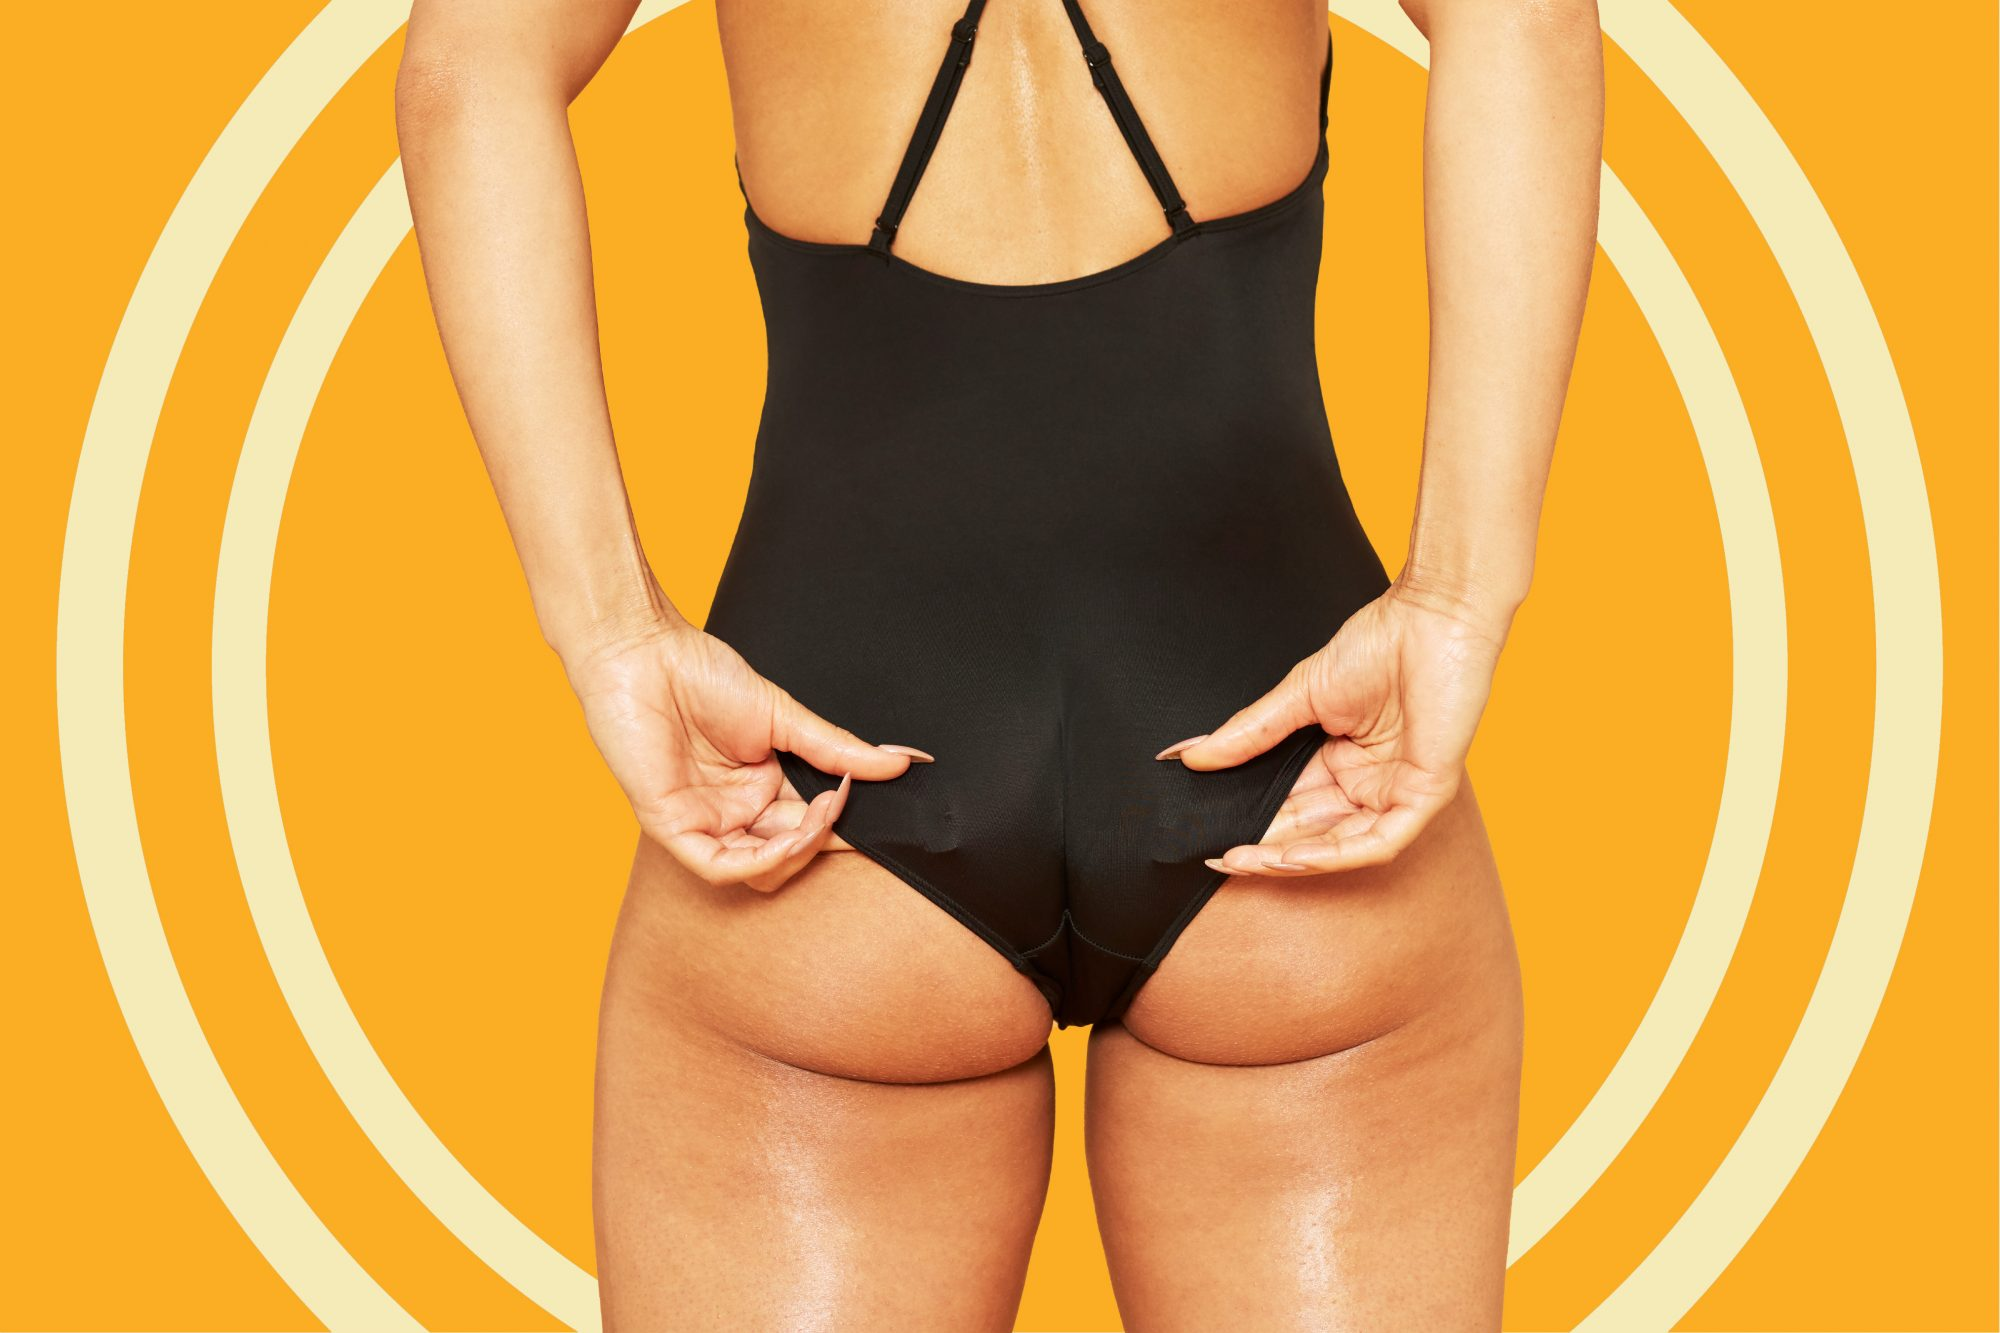 Shoppers-Call-This-$10-Product-The-Best-Remedy-For-Ingrown-Hairs-and-Butt-Acne-GettyImages-970319360